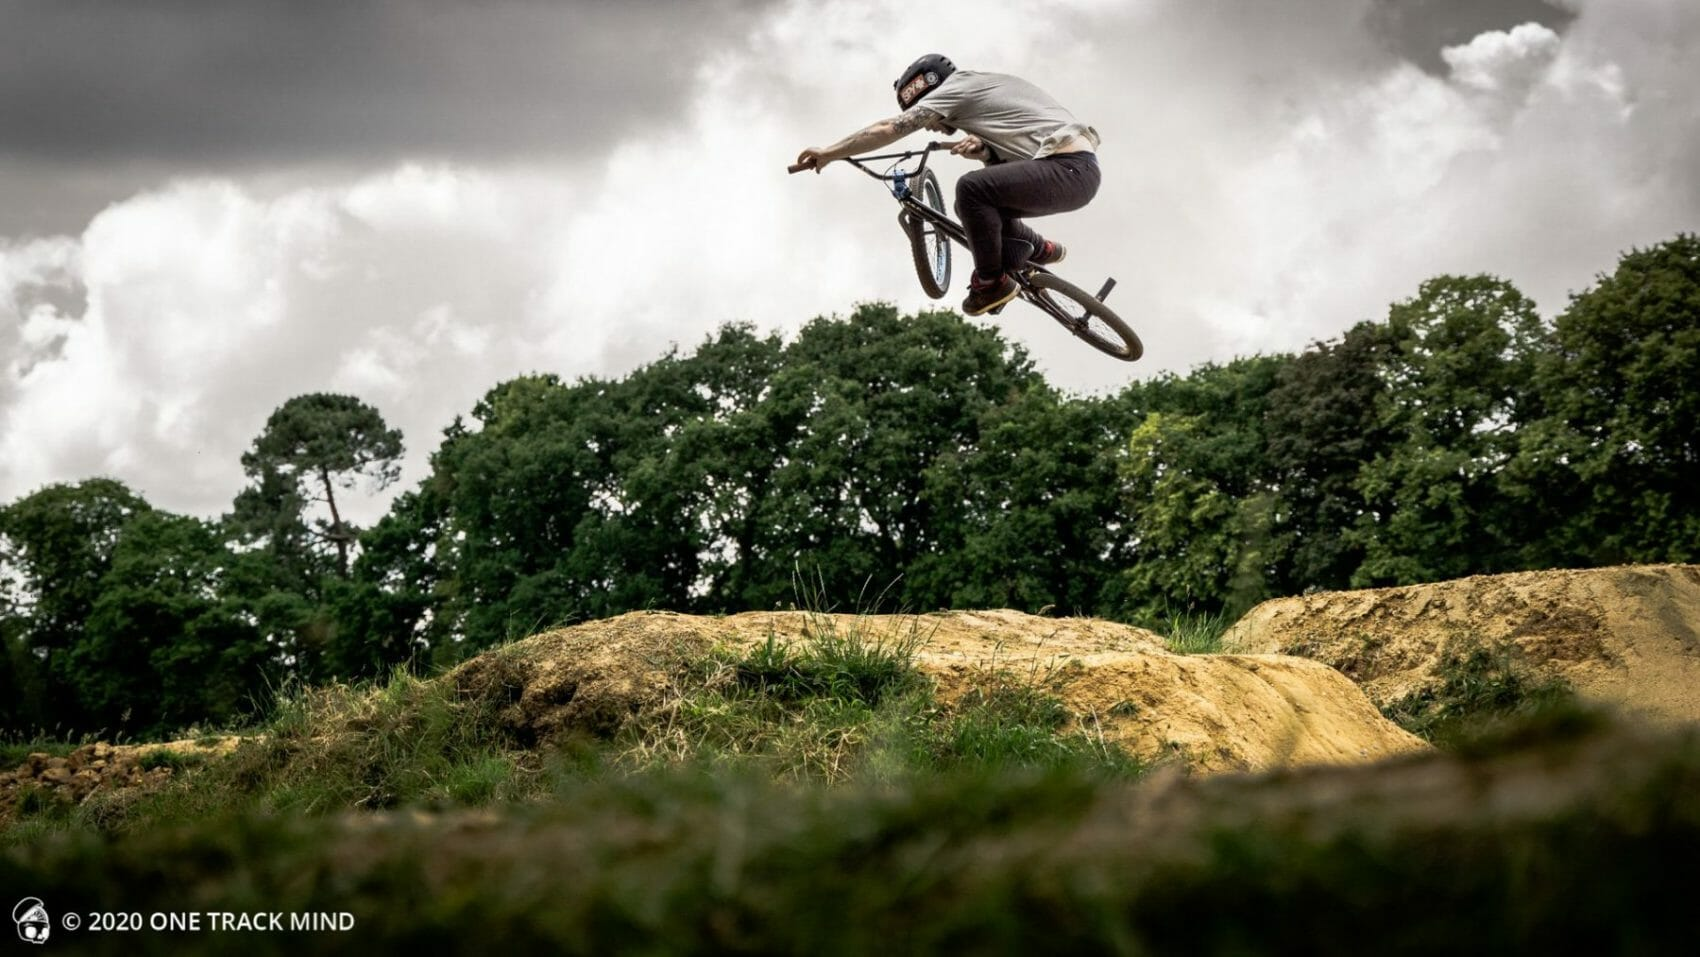 Photoshoot – Southampton Bike Park